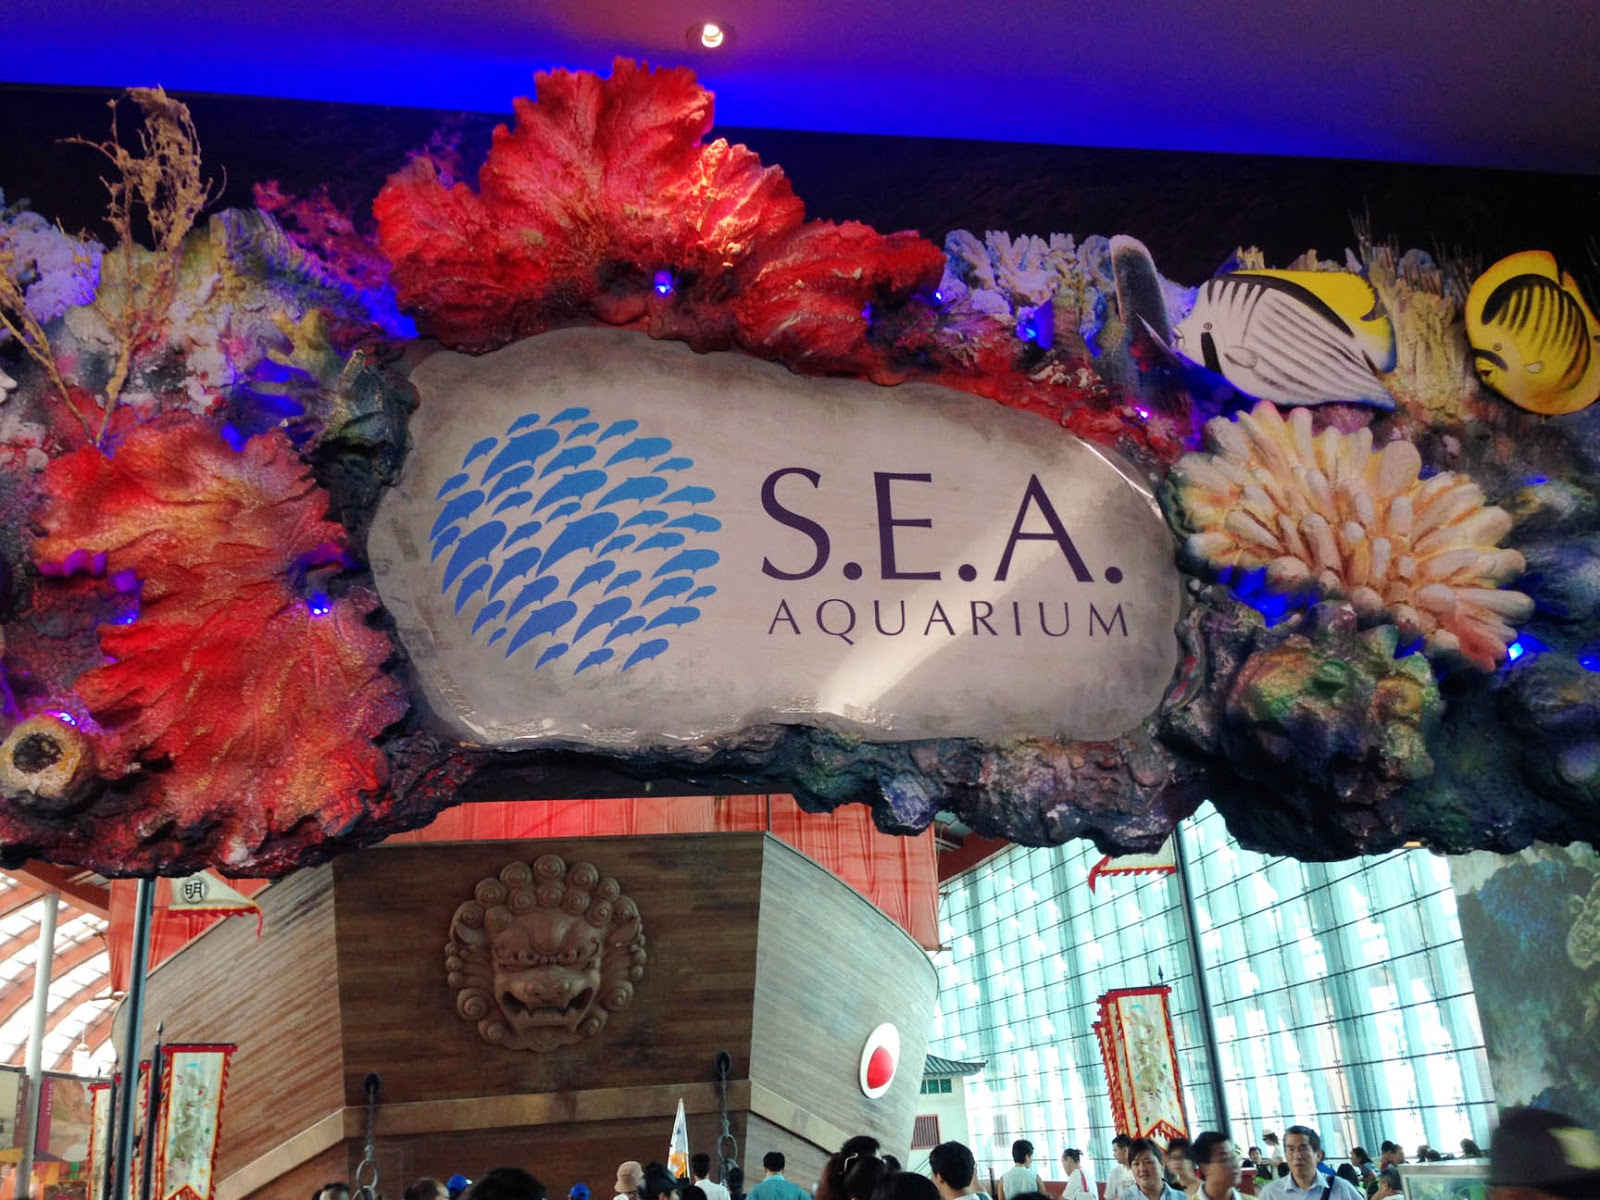 1c46da1e430 I ve been wanting to go to the S.E.A. Aquarium in Singapore for quite some  time now